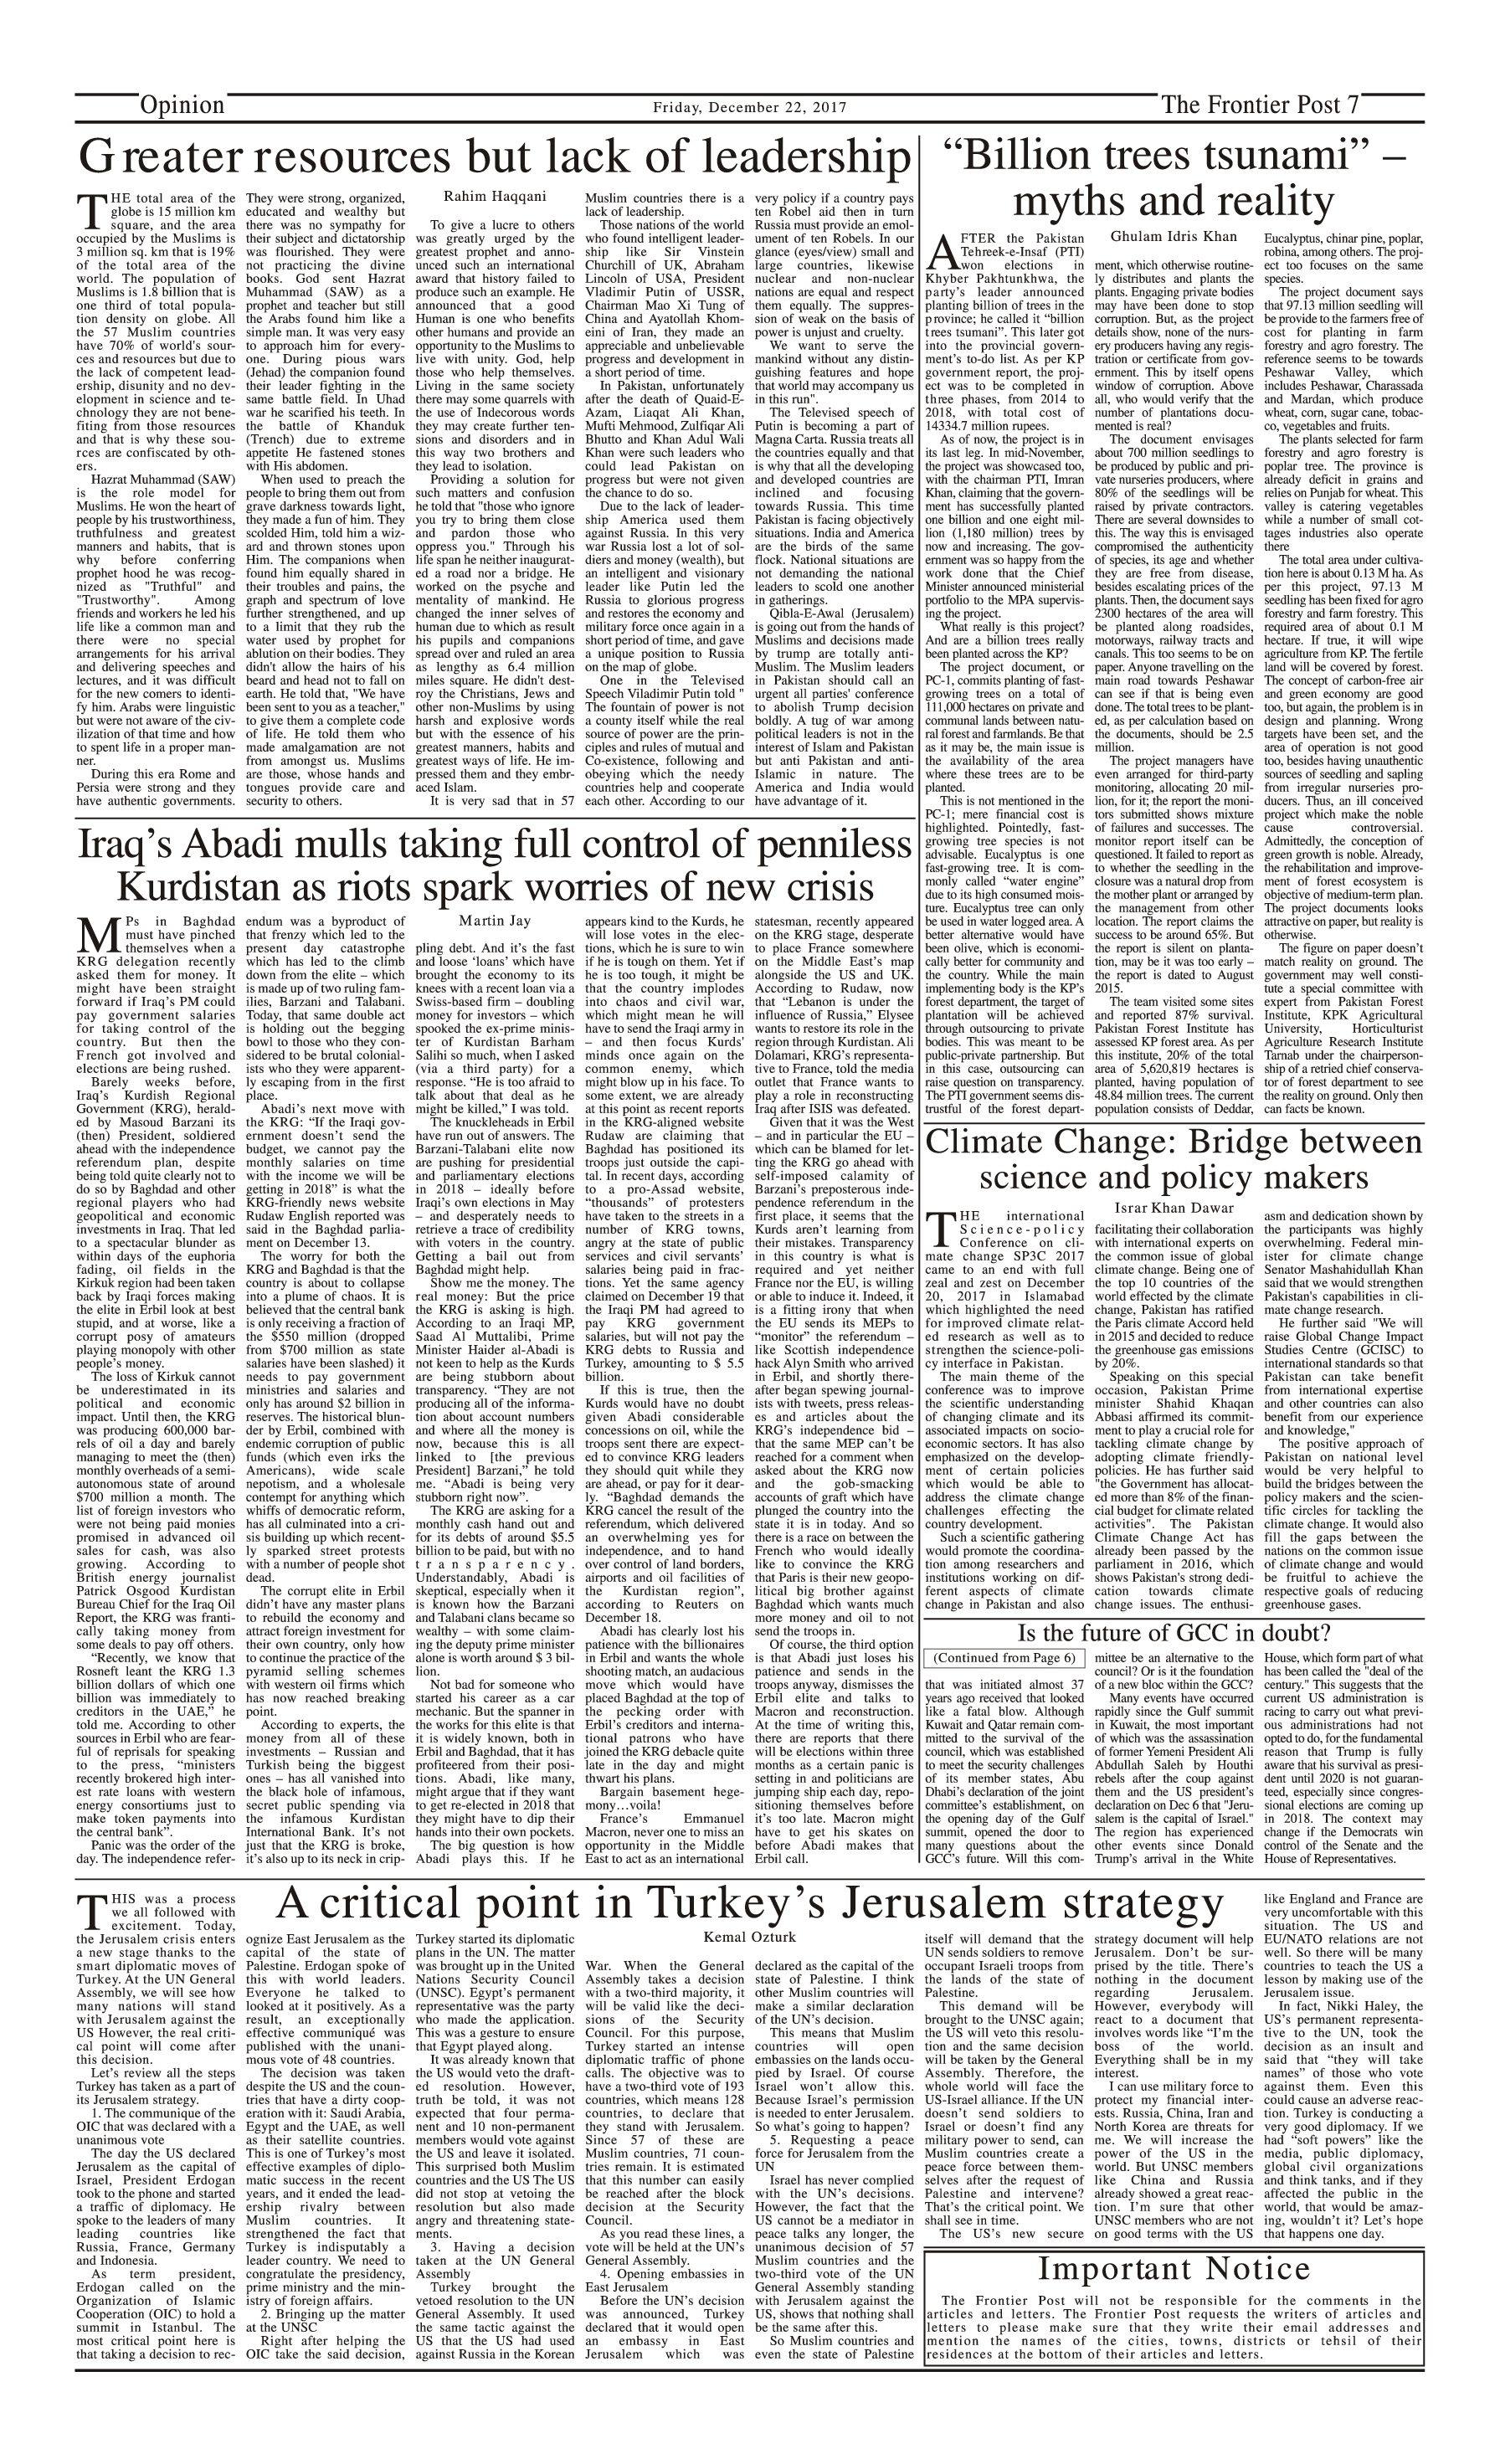 Opinion Page 22-12